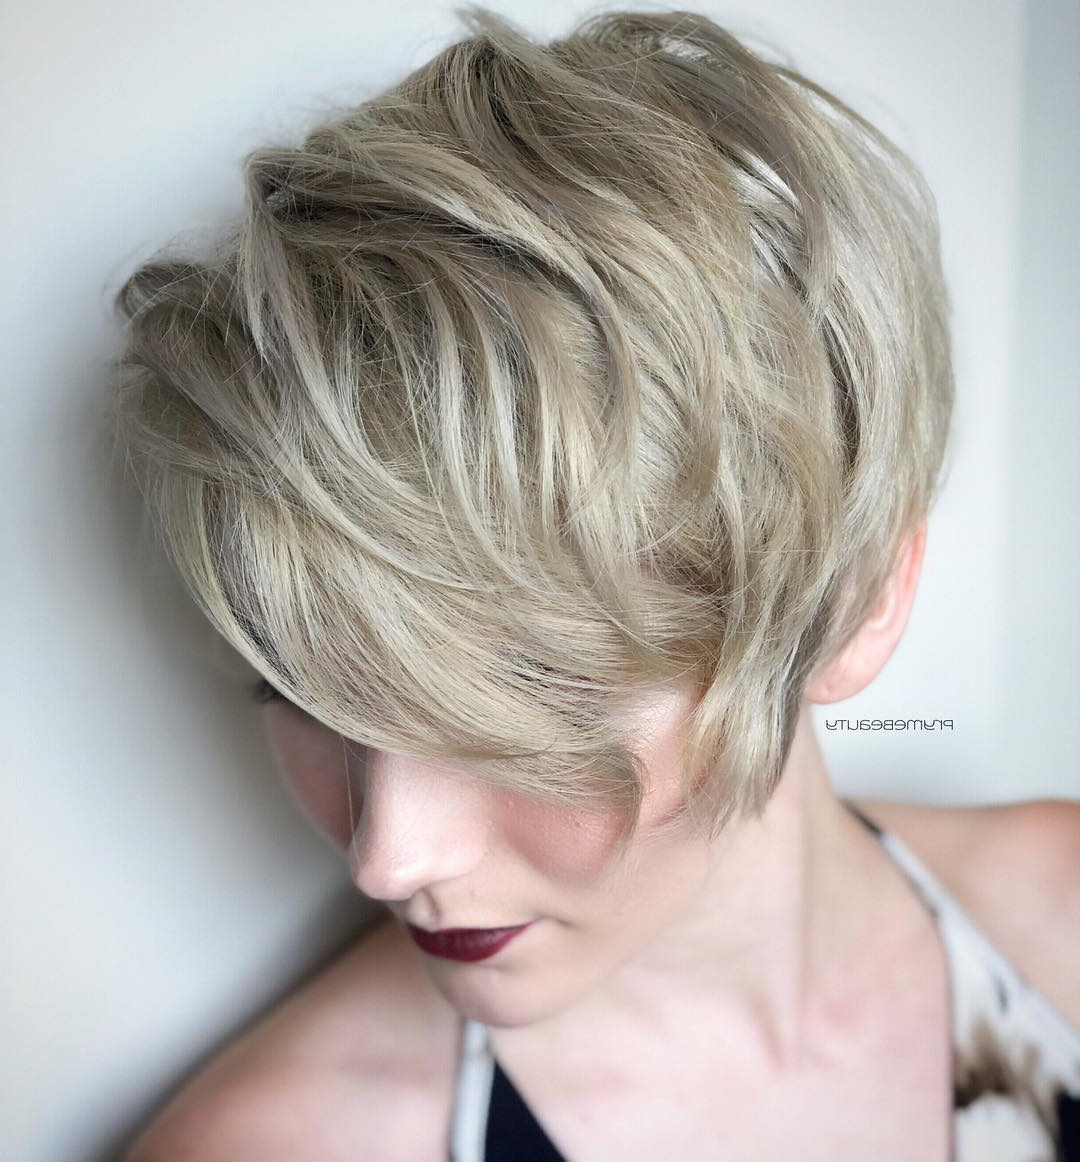 Top 10 Trendy, Low Maintenance Short Layered Hairstyles For 2018 2019 Inside Low Maintenance Short Haircuts (View 4 of 25)